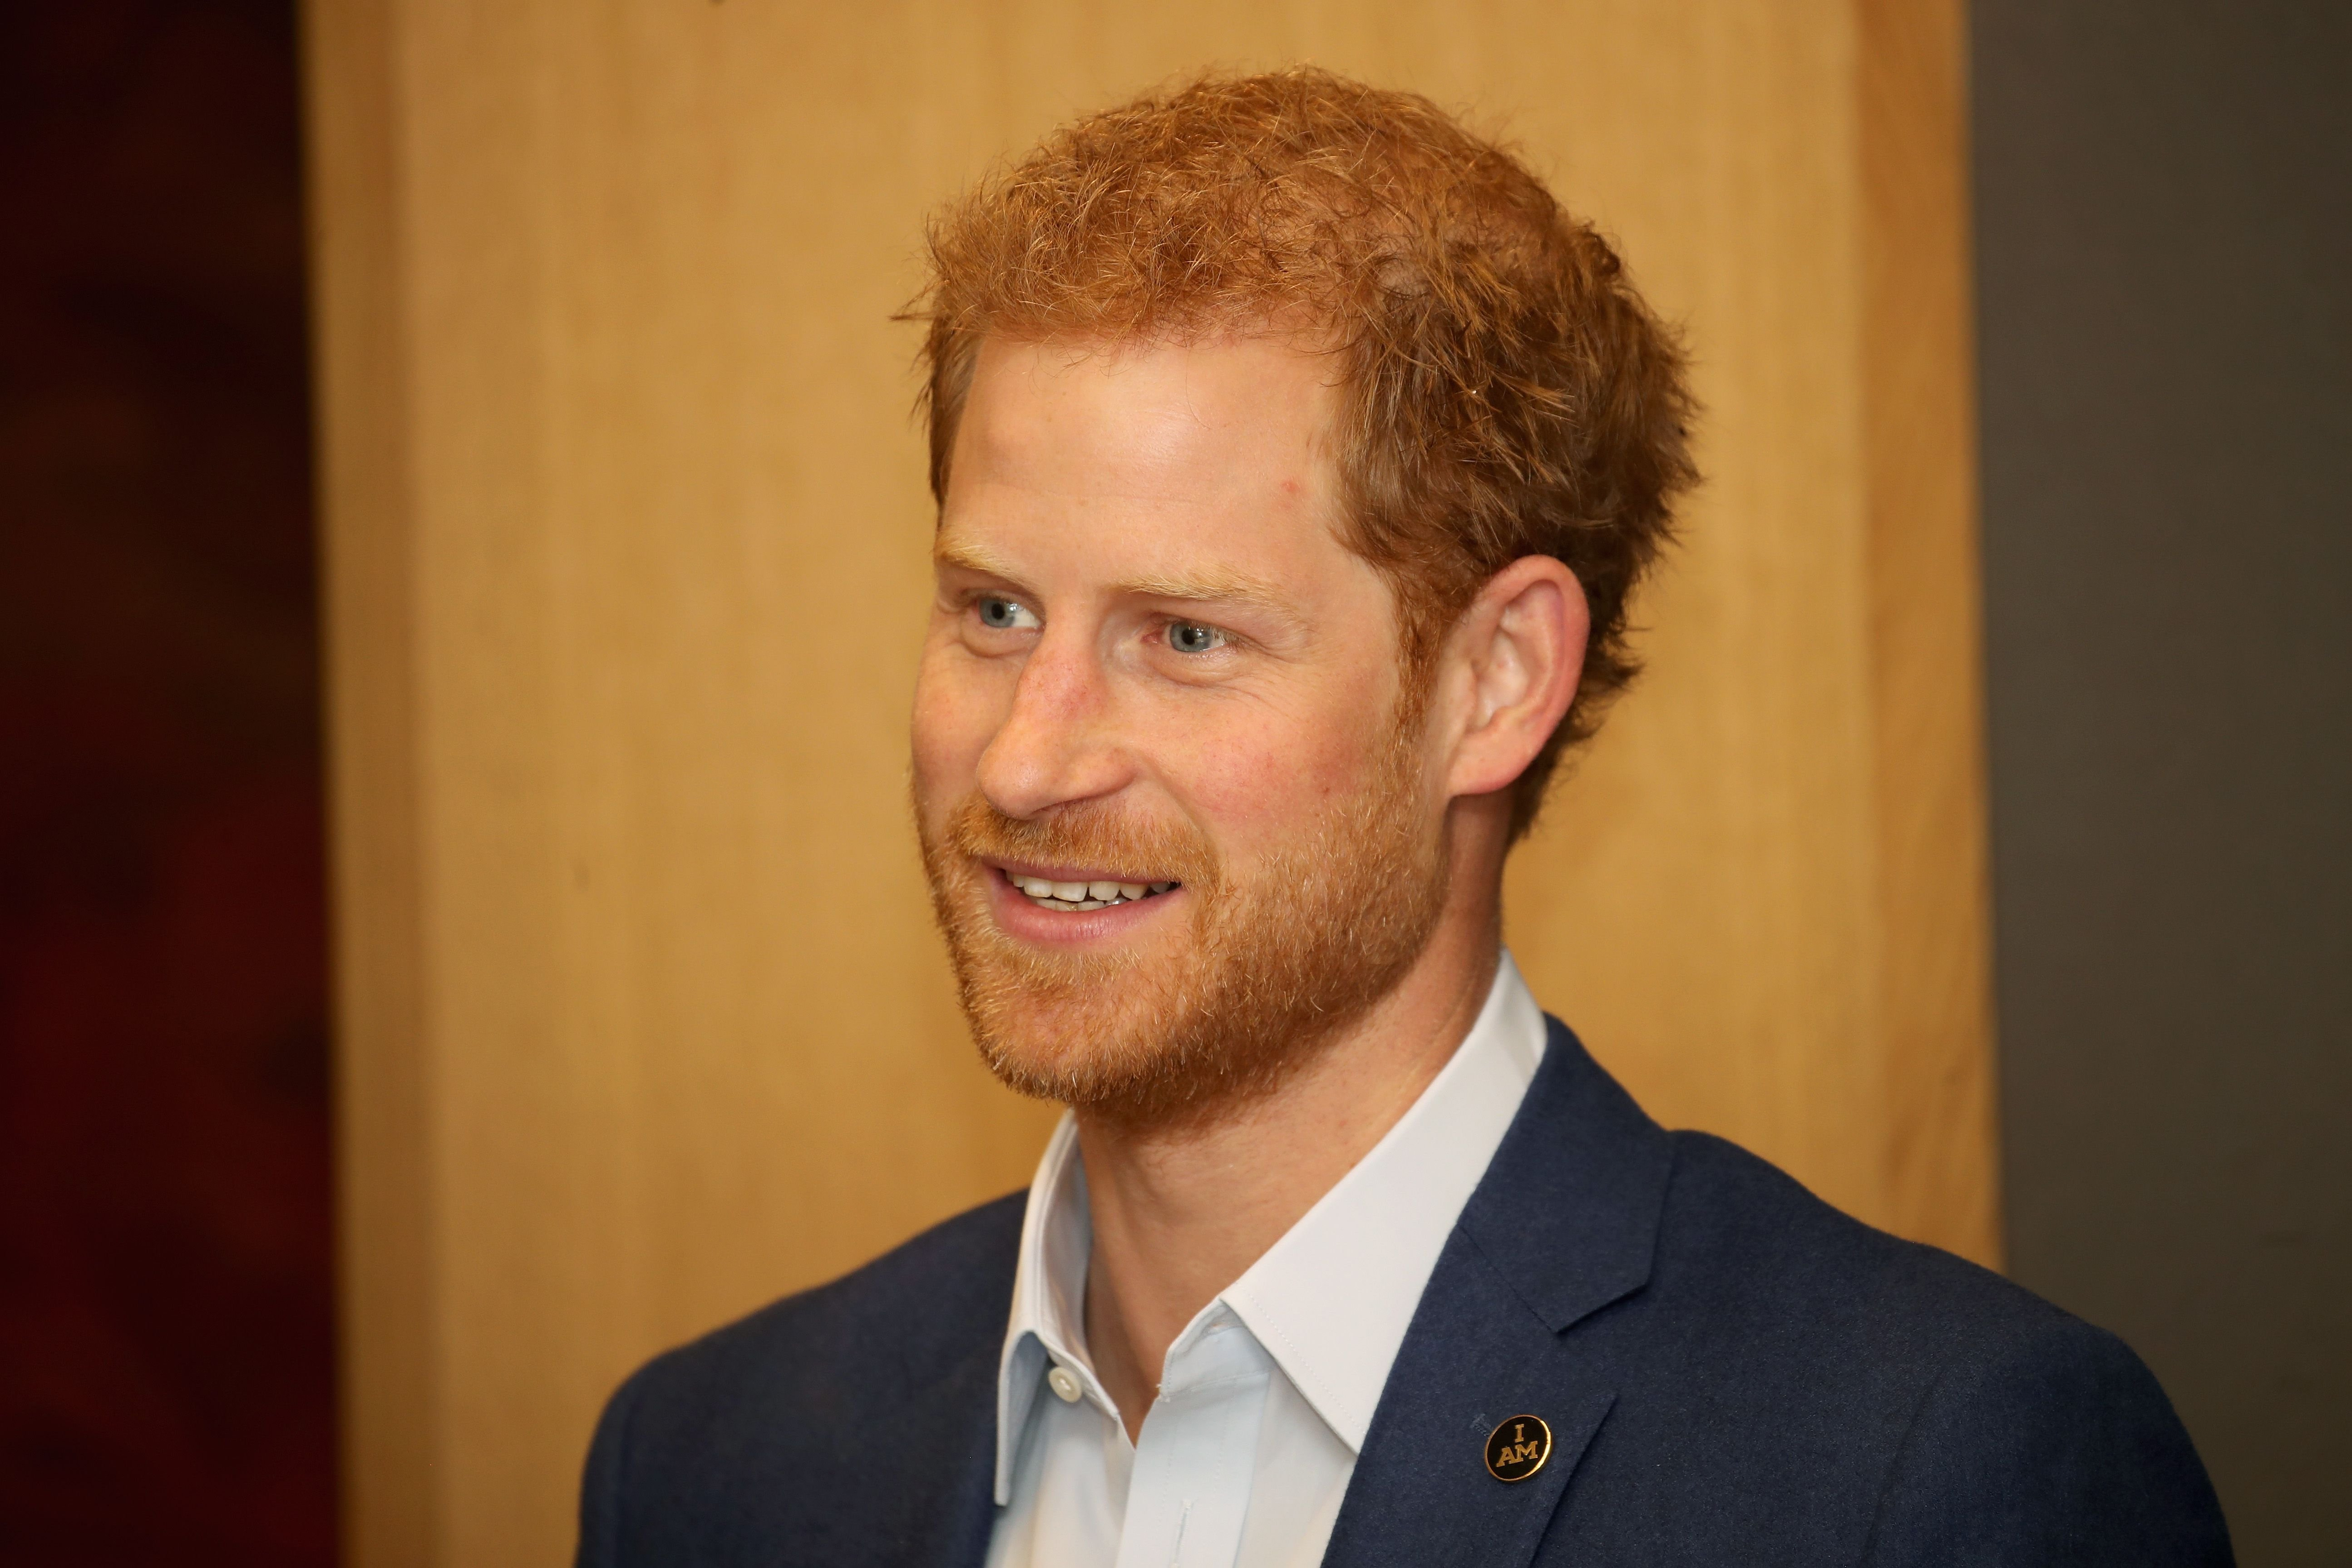 Prince Harry at the True Patriot Love Symposium at Scotia Plaza during a pre Invictus Games event on September 22, 2017 in Toronto, Canada | Photo: Getty Images